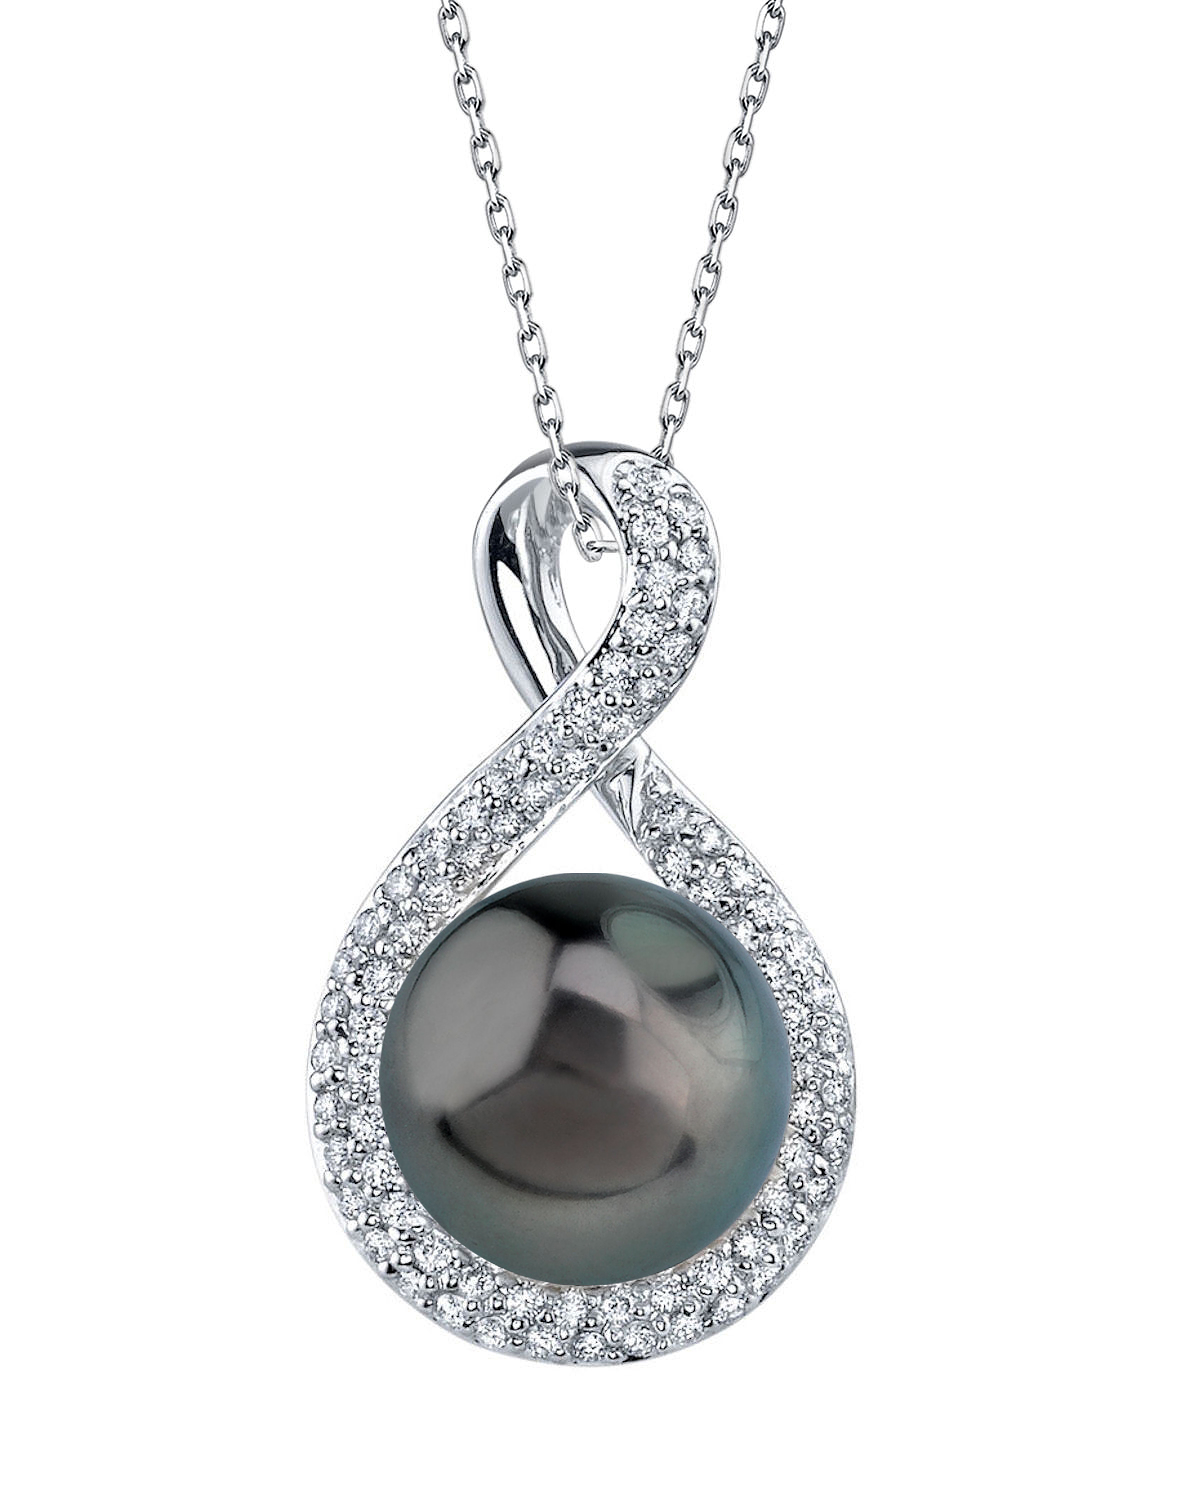 Tahitian South Sea Pearl & Diamond Erica Pendant